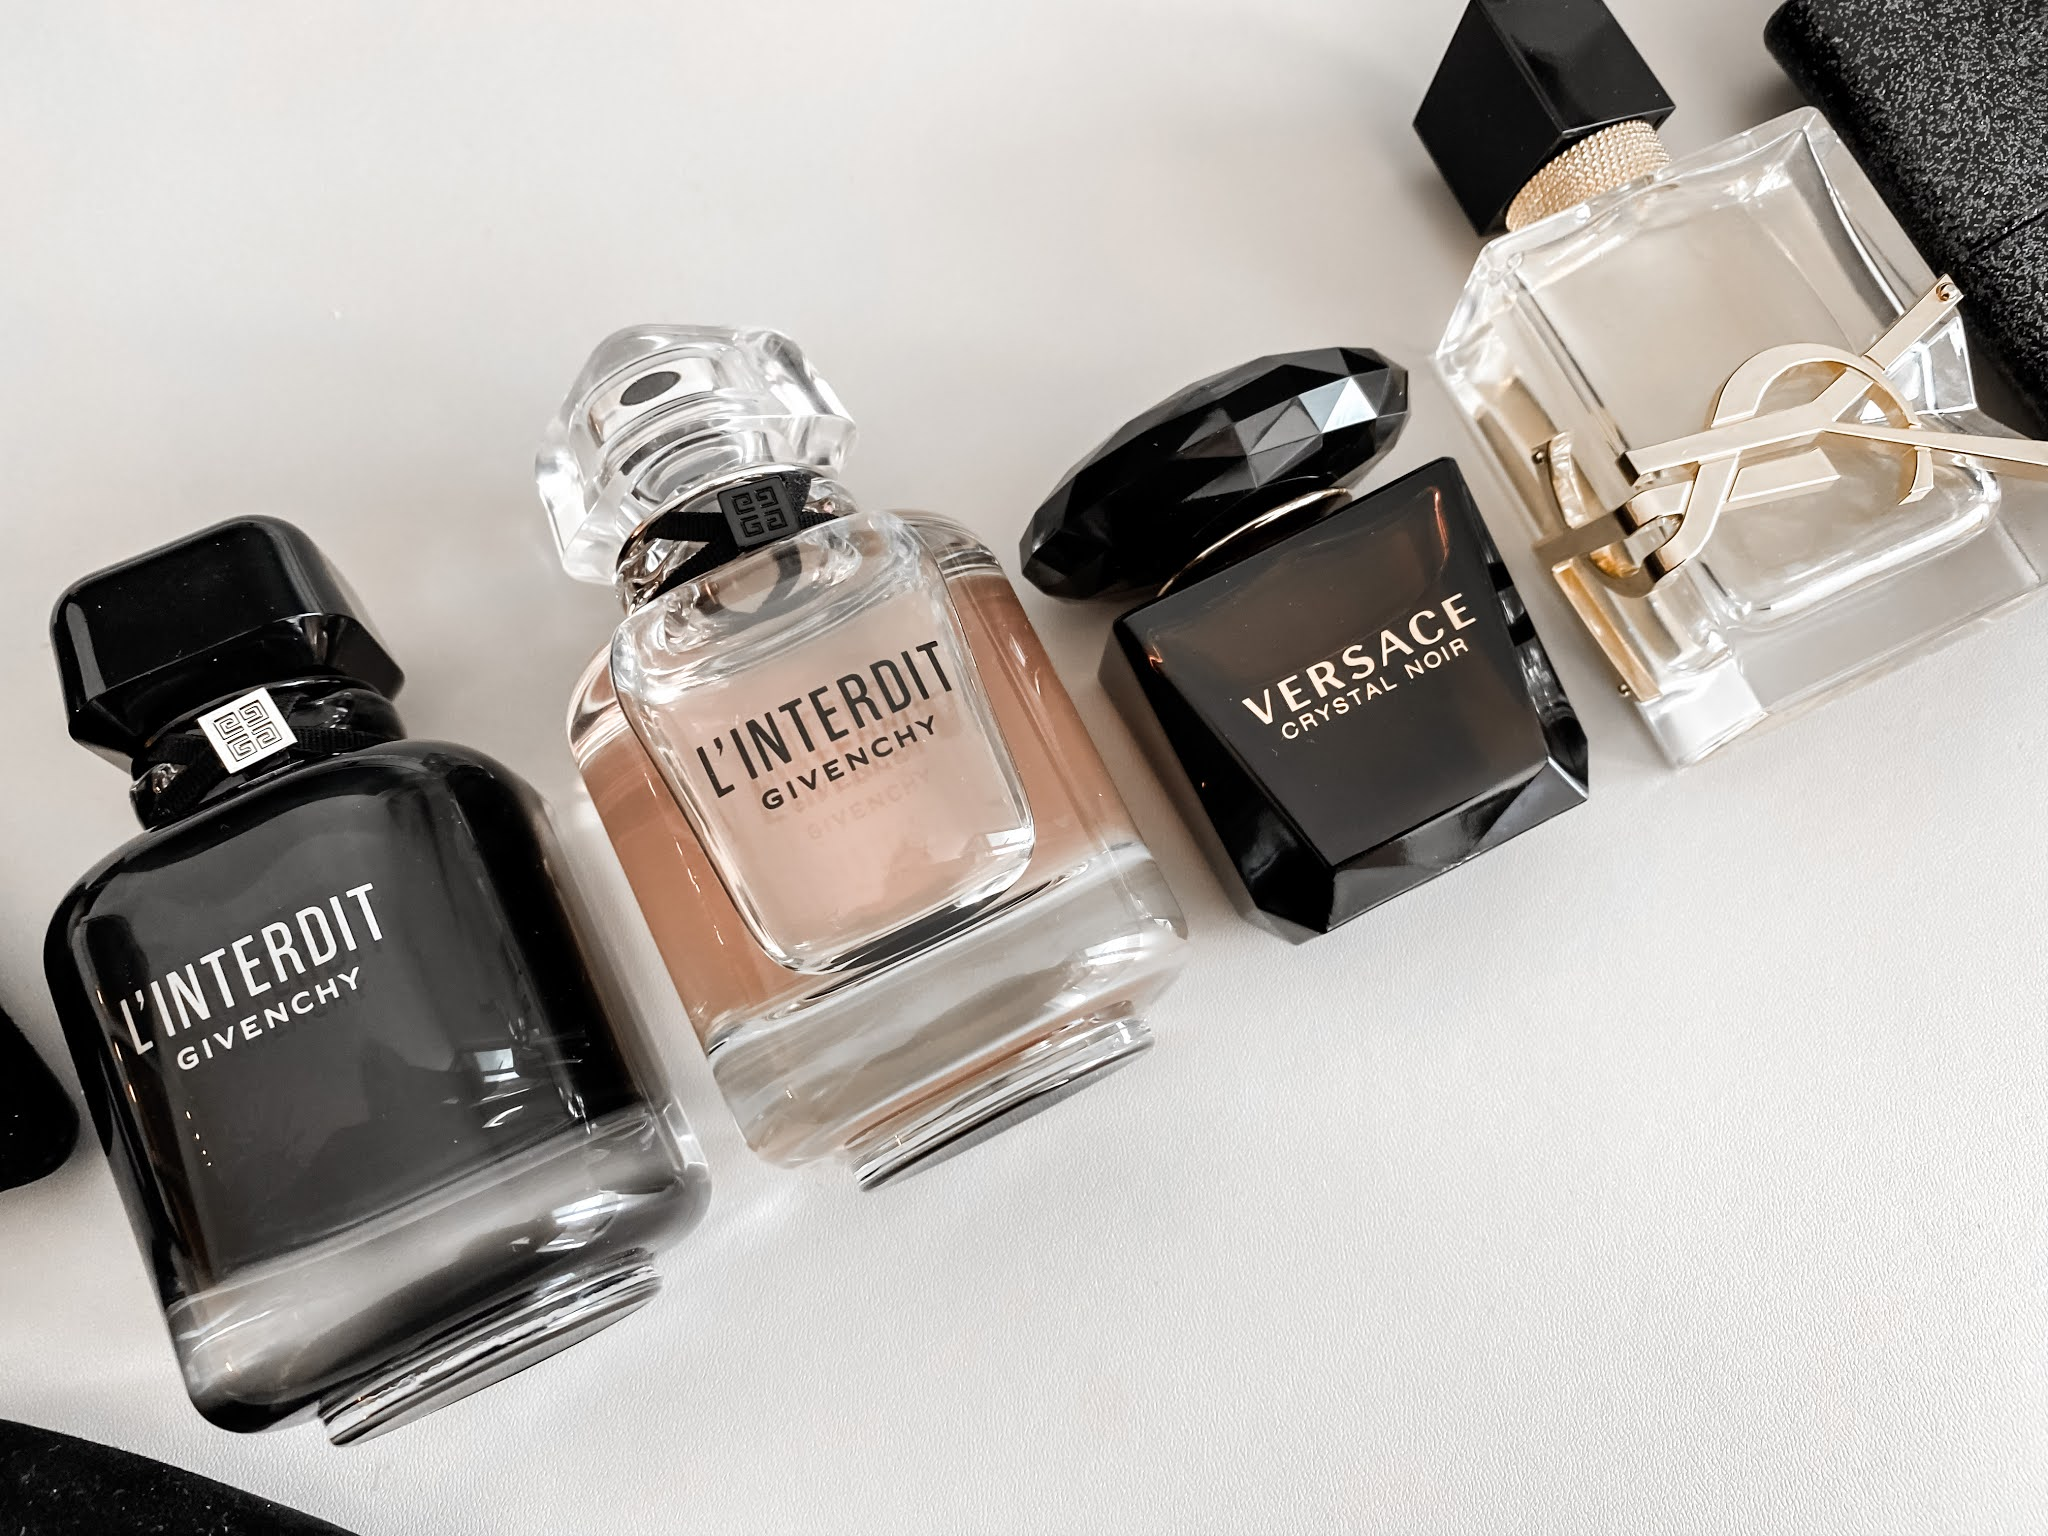 Perfume Collection Evening Edition with YSL Libre, Black Opium, Versace Crystal Noir